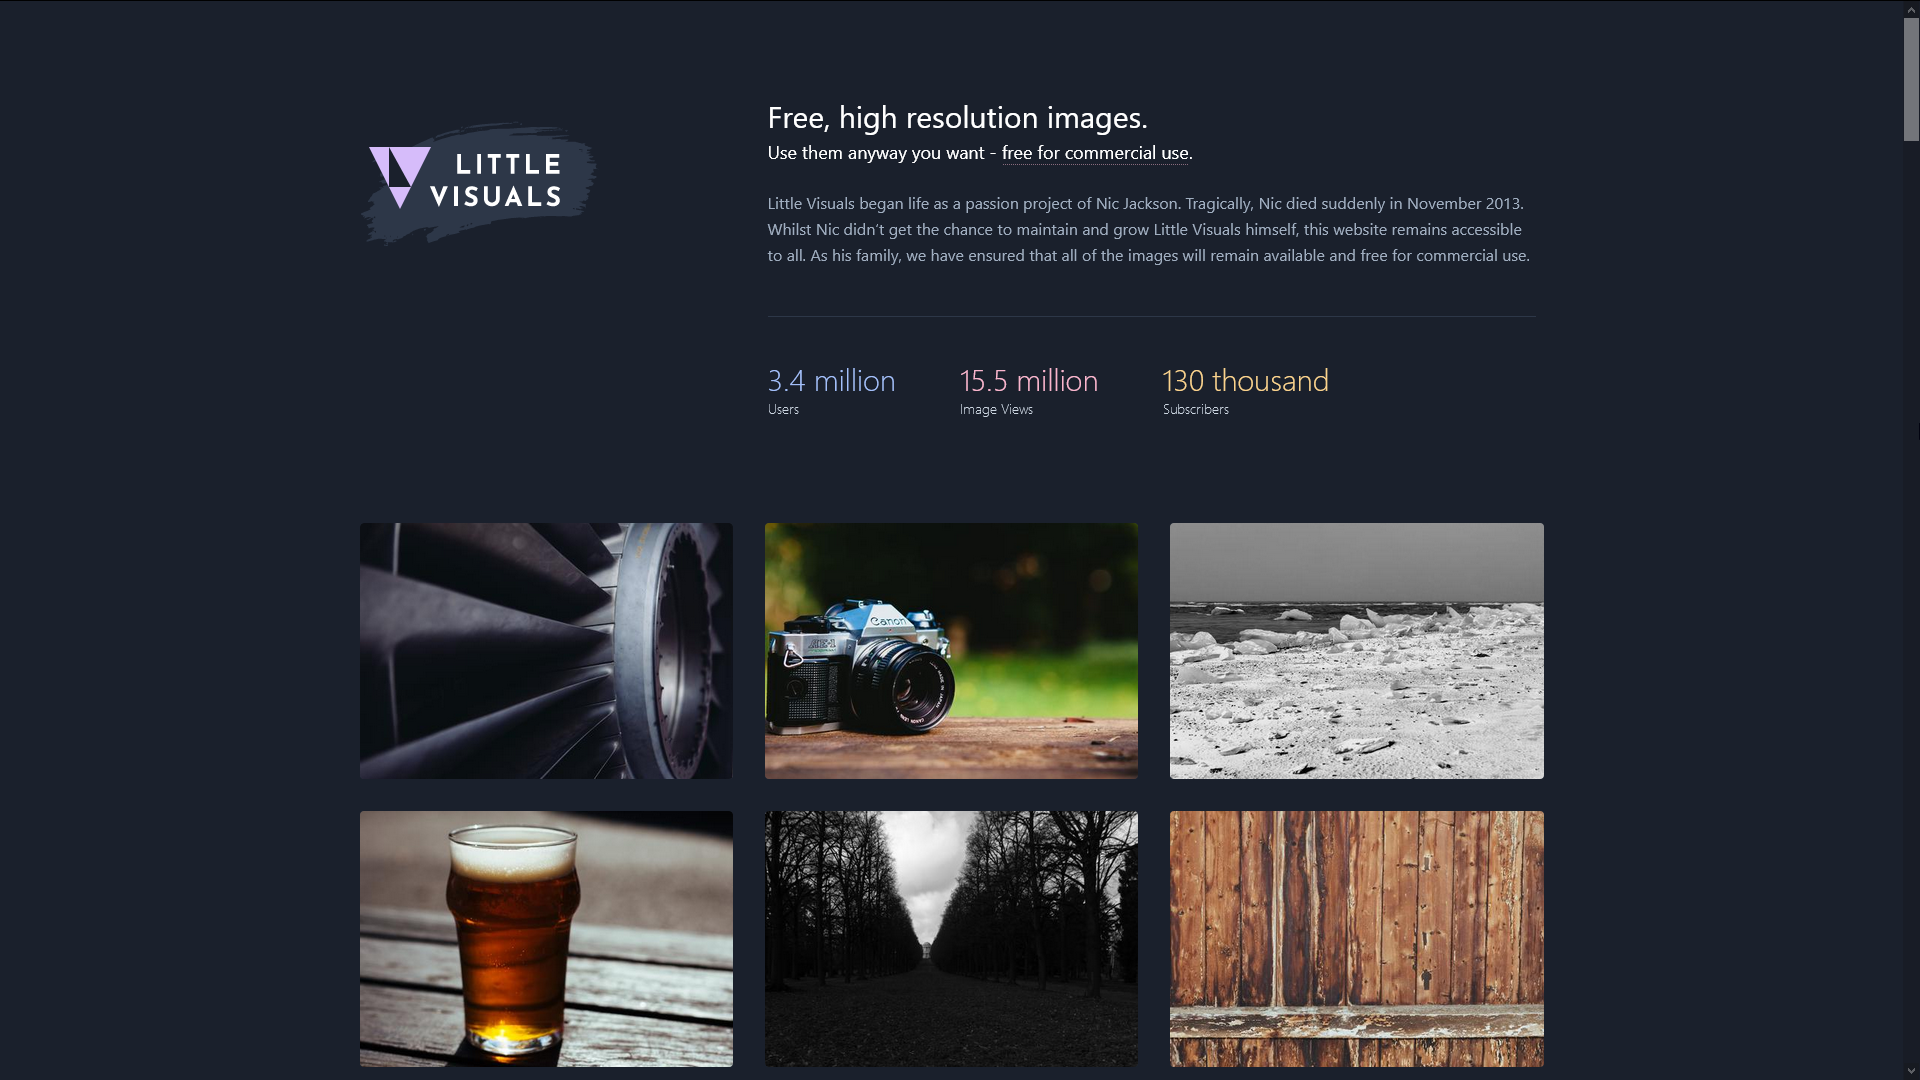 Little Visuals Free Images | Agency Vista